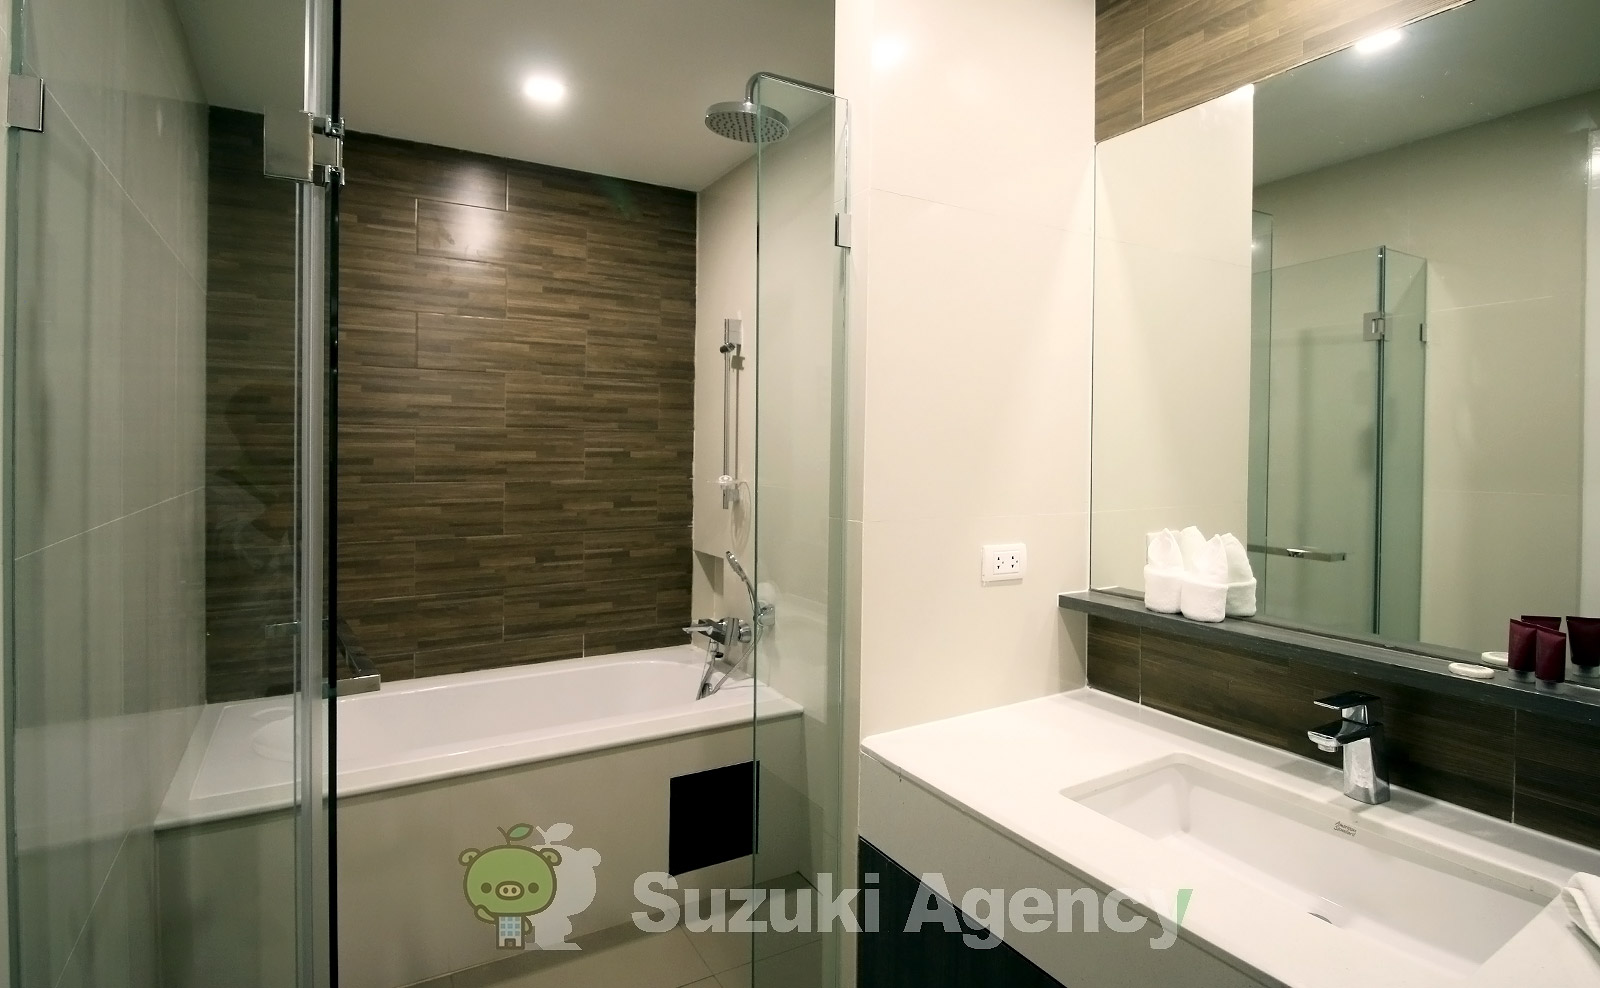 METROPOLE Residence (旧 Parc 39):1Bed Room Photos No.9